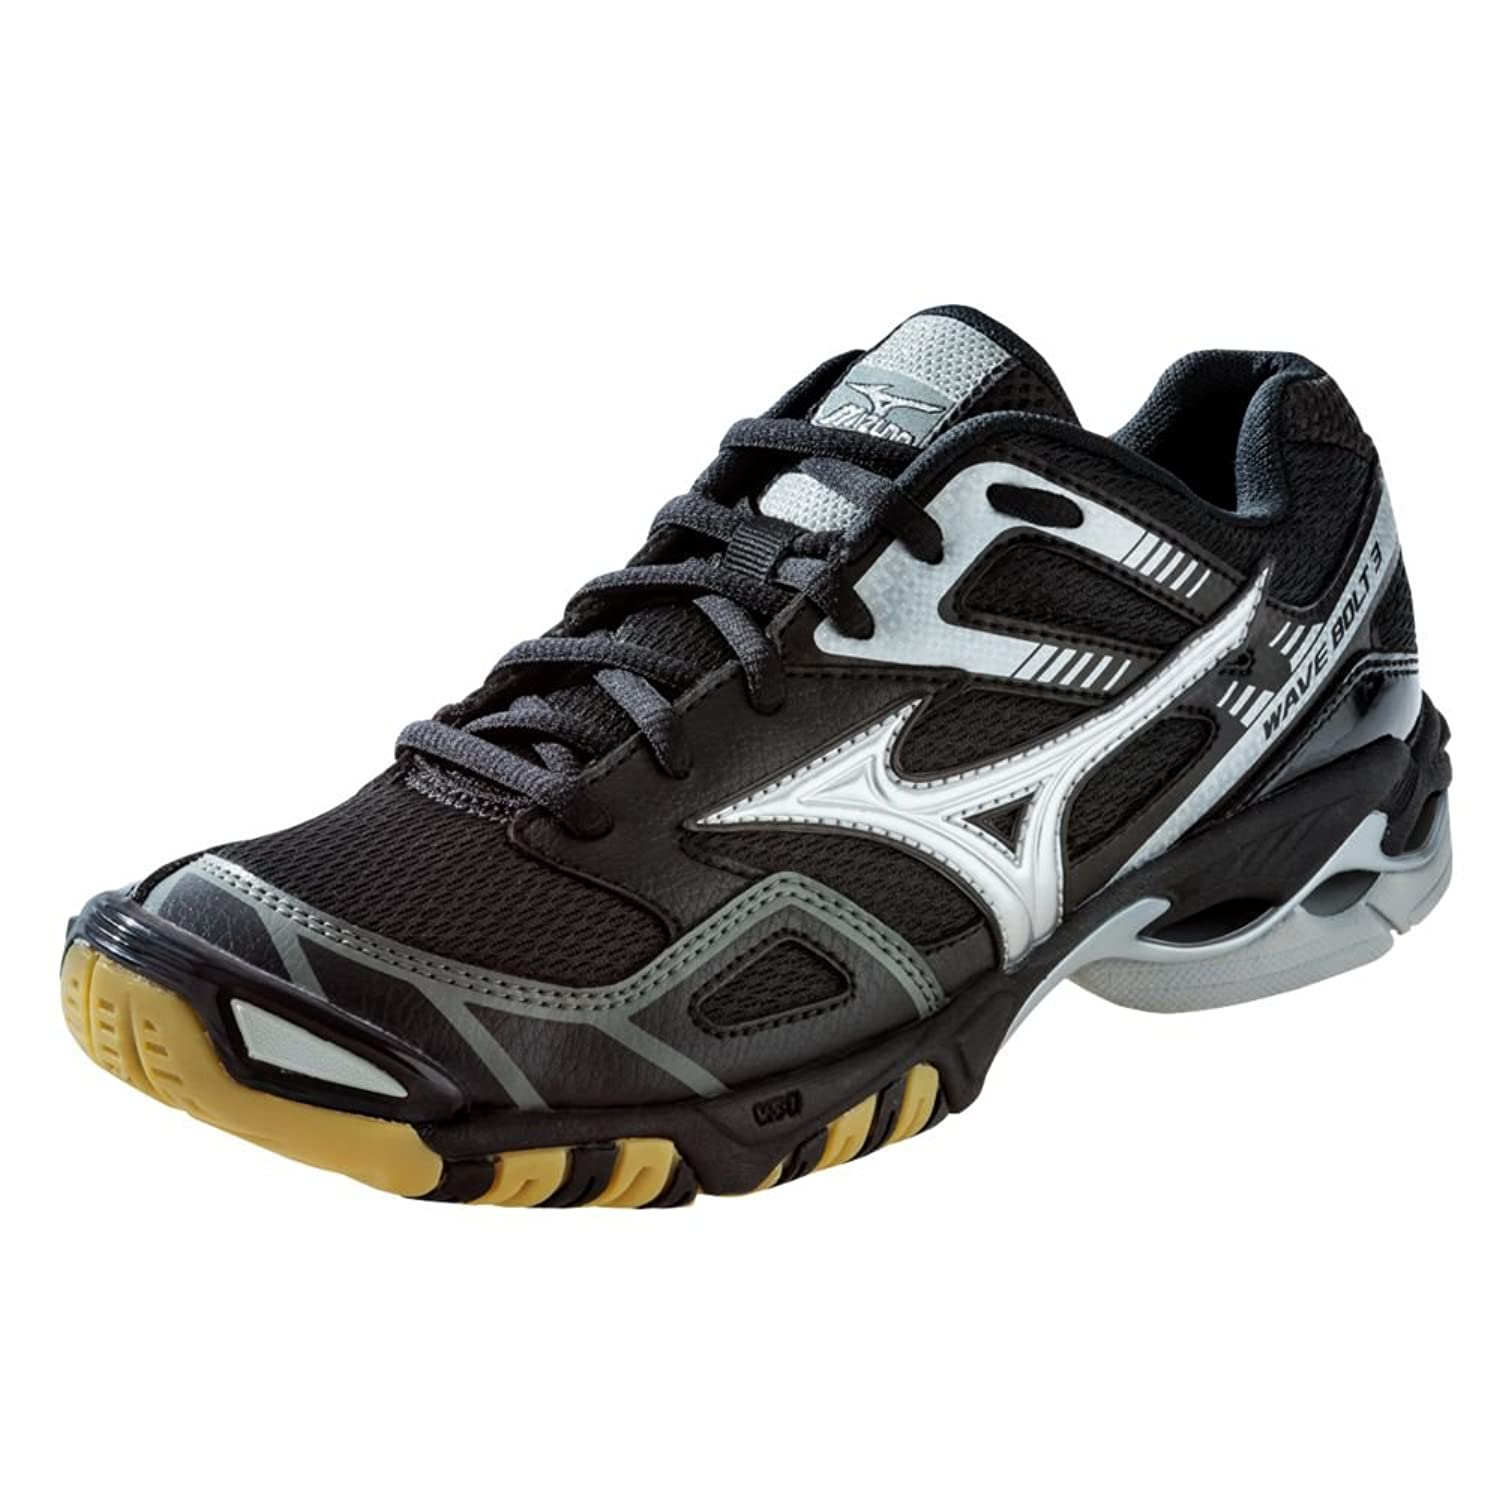 Mizuno Volleyball Shoes Black And Silver 3 Volleyball Shoes Black